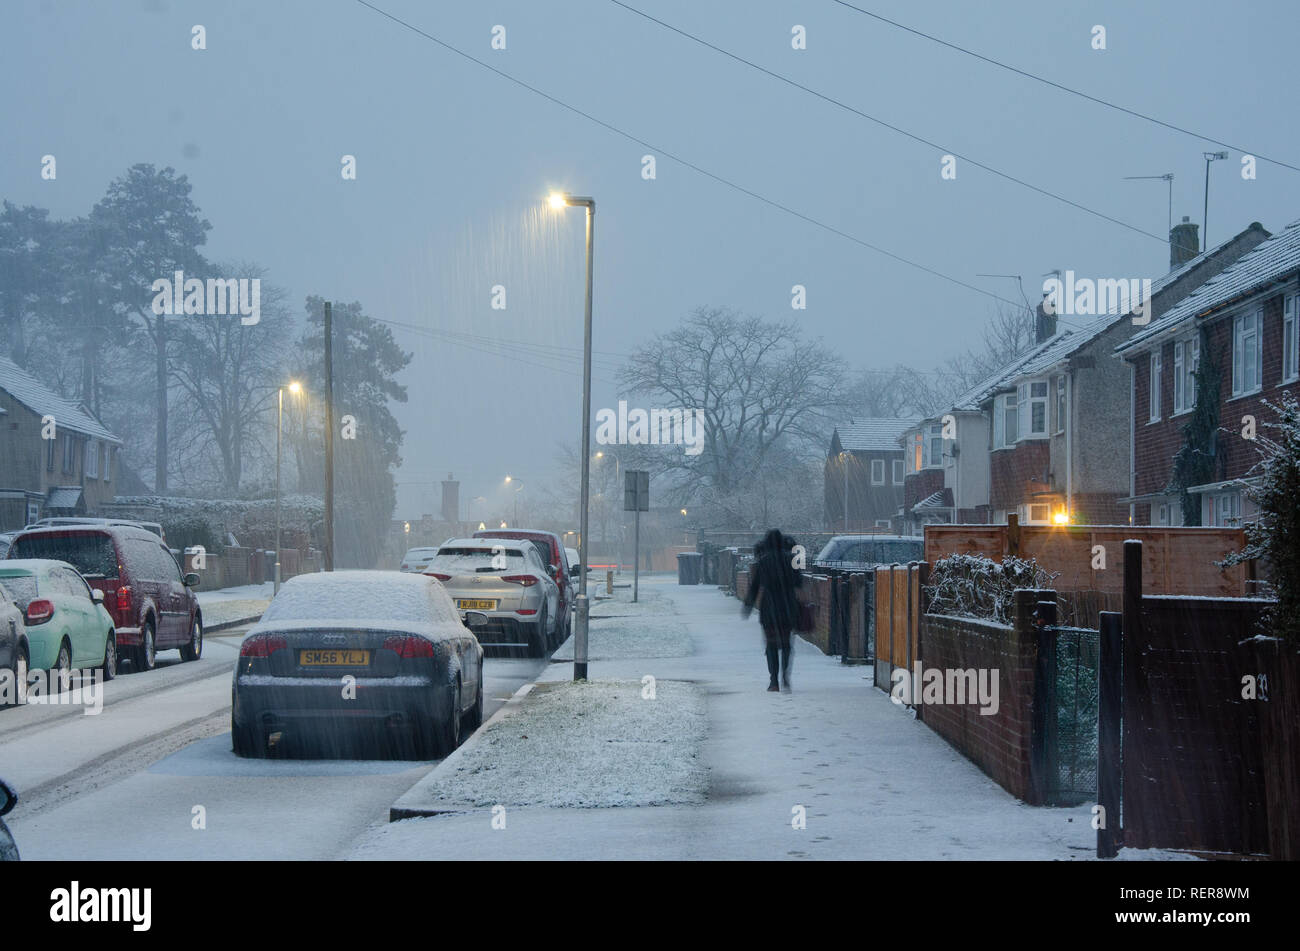 reading-uk-22nd-jan-2019-uk-weather-the-ground-is-covered-with-snow-in-the-early-evening-in-reading-uk-matthew-ashmorealamy-live-news-RER8WM.jpg